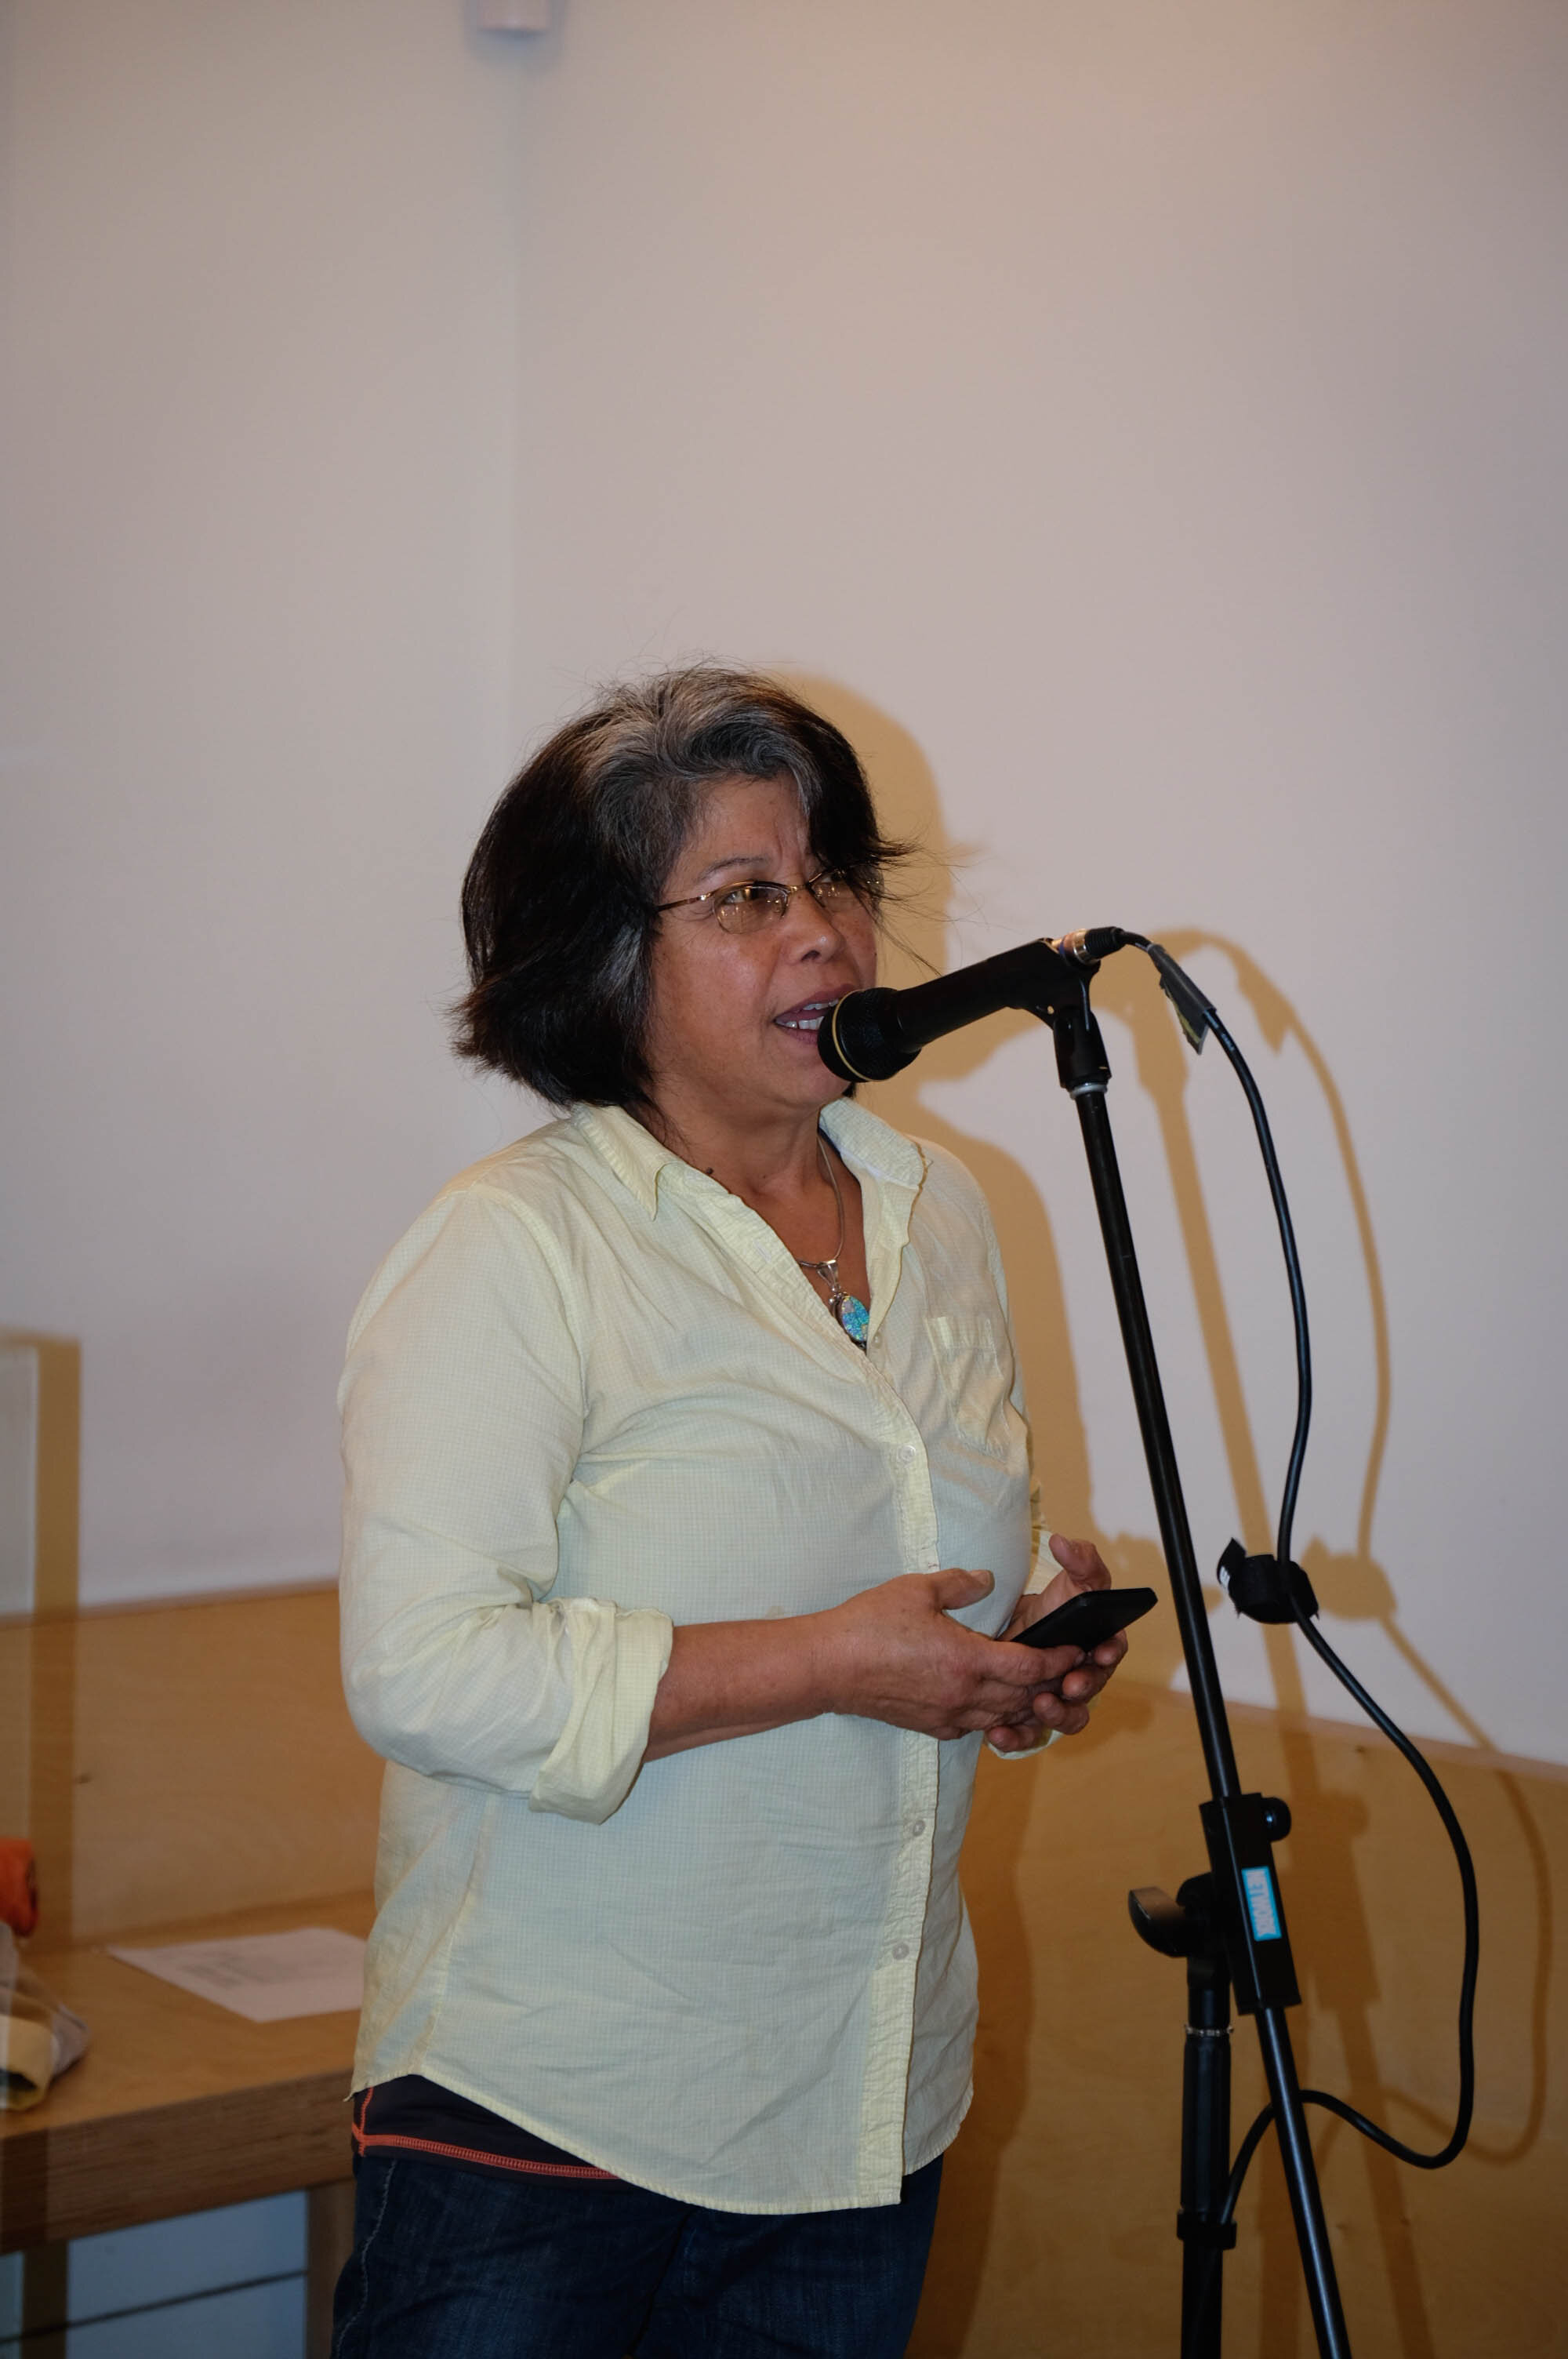 Storyteller & award-winning Chef, Gloria on: her eclectic life story and how the feminine is instrumental in nurturing social and environmental justice.